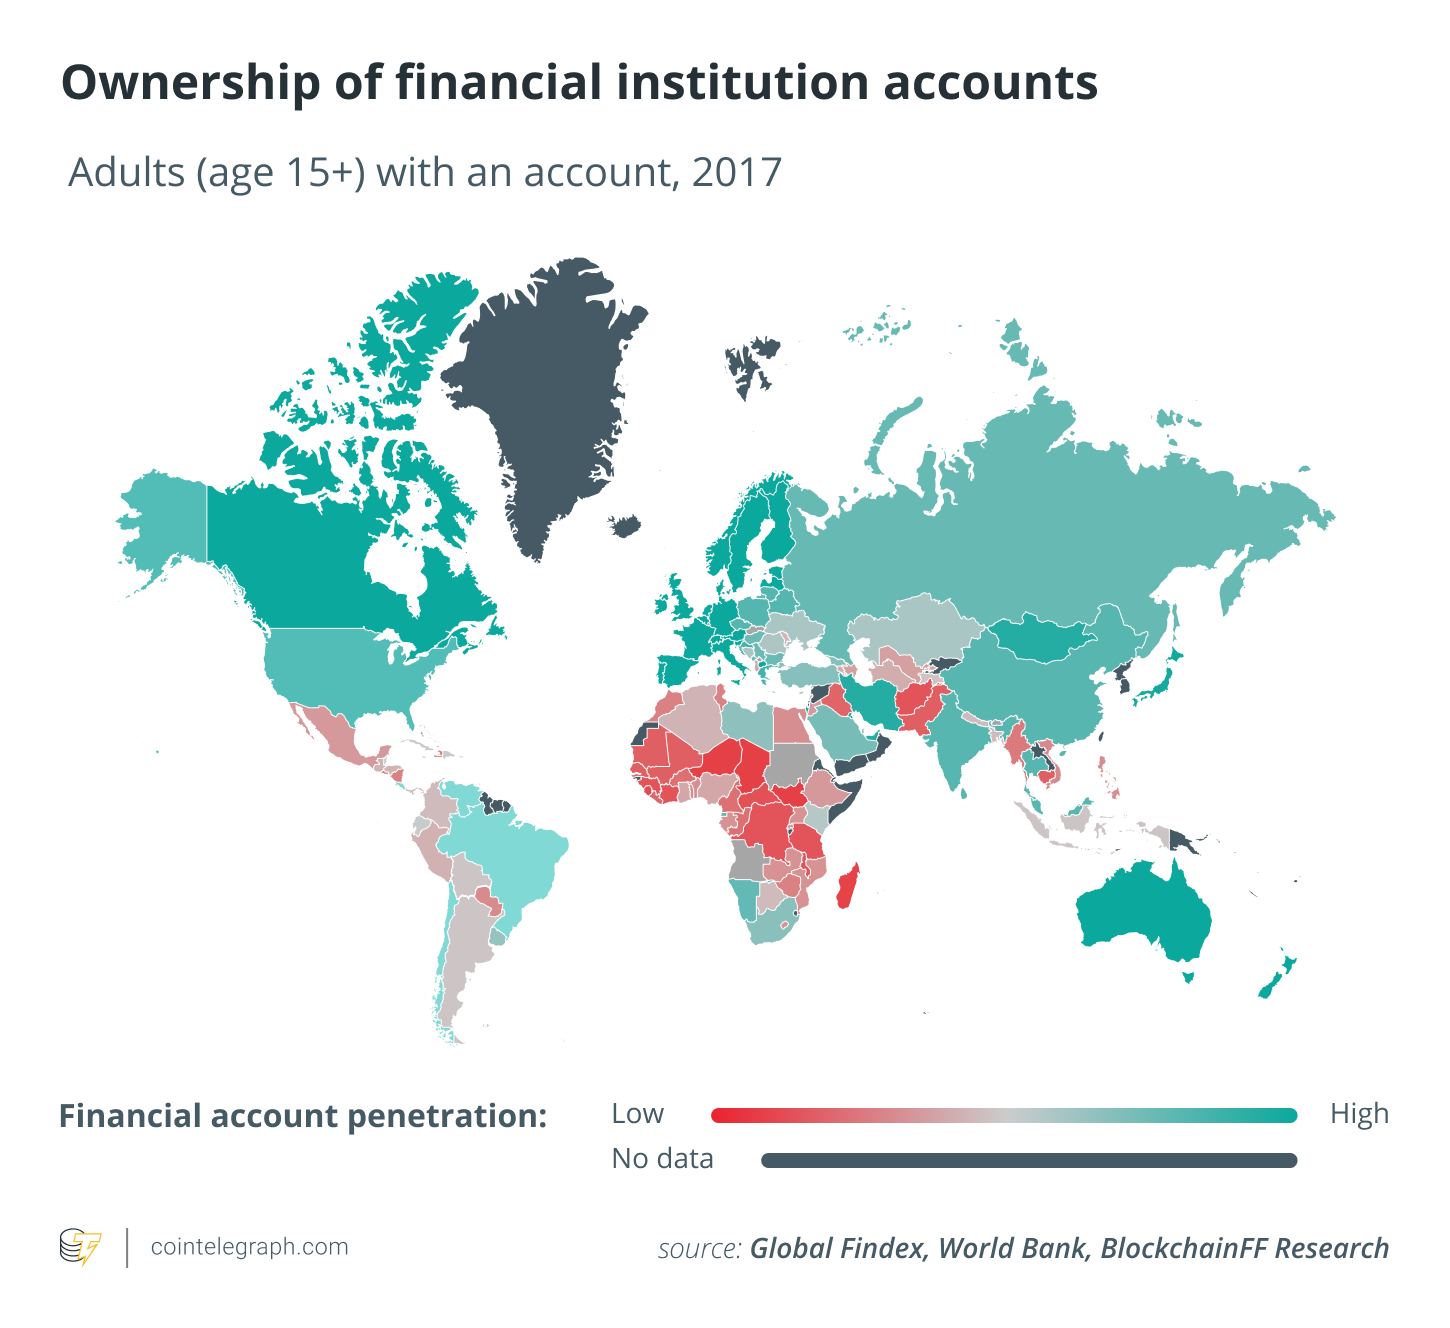 Ownership of financial accounts